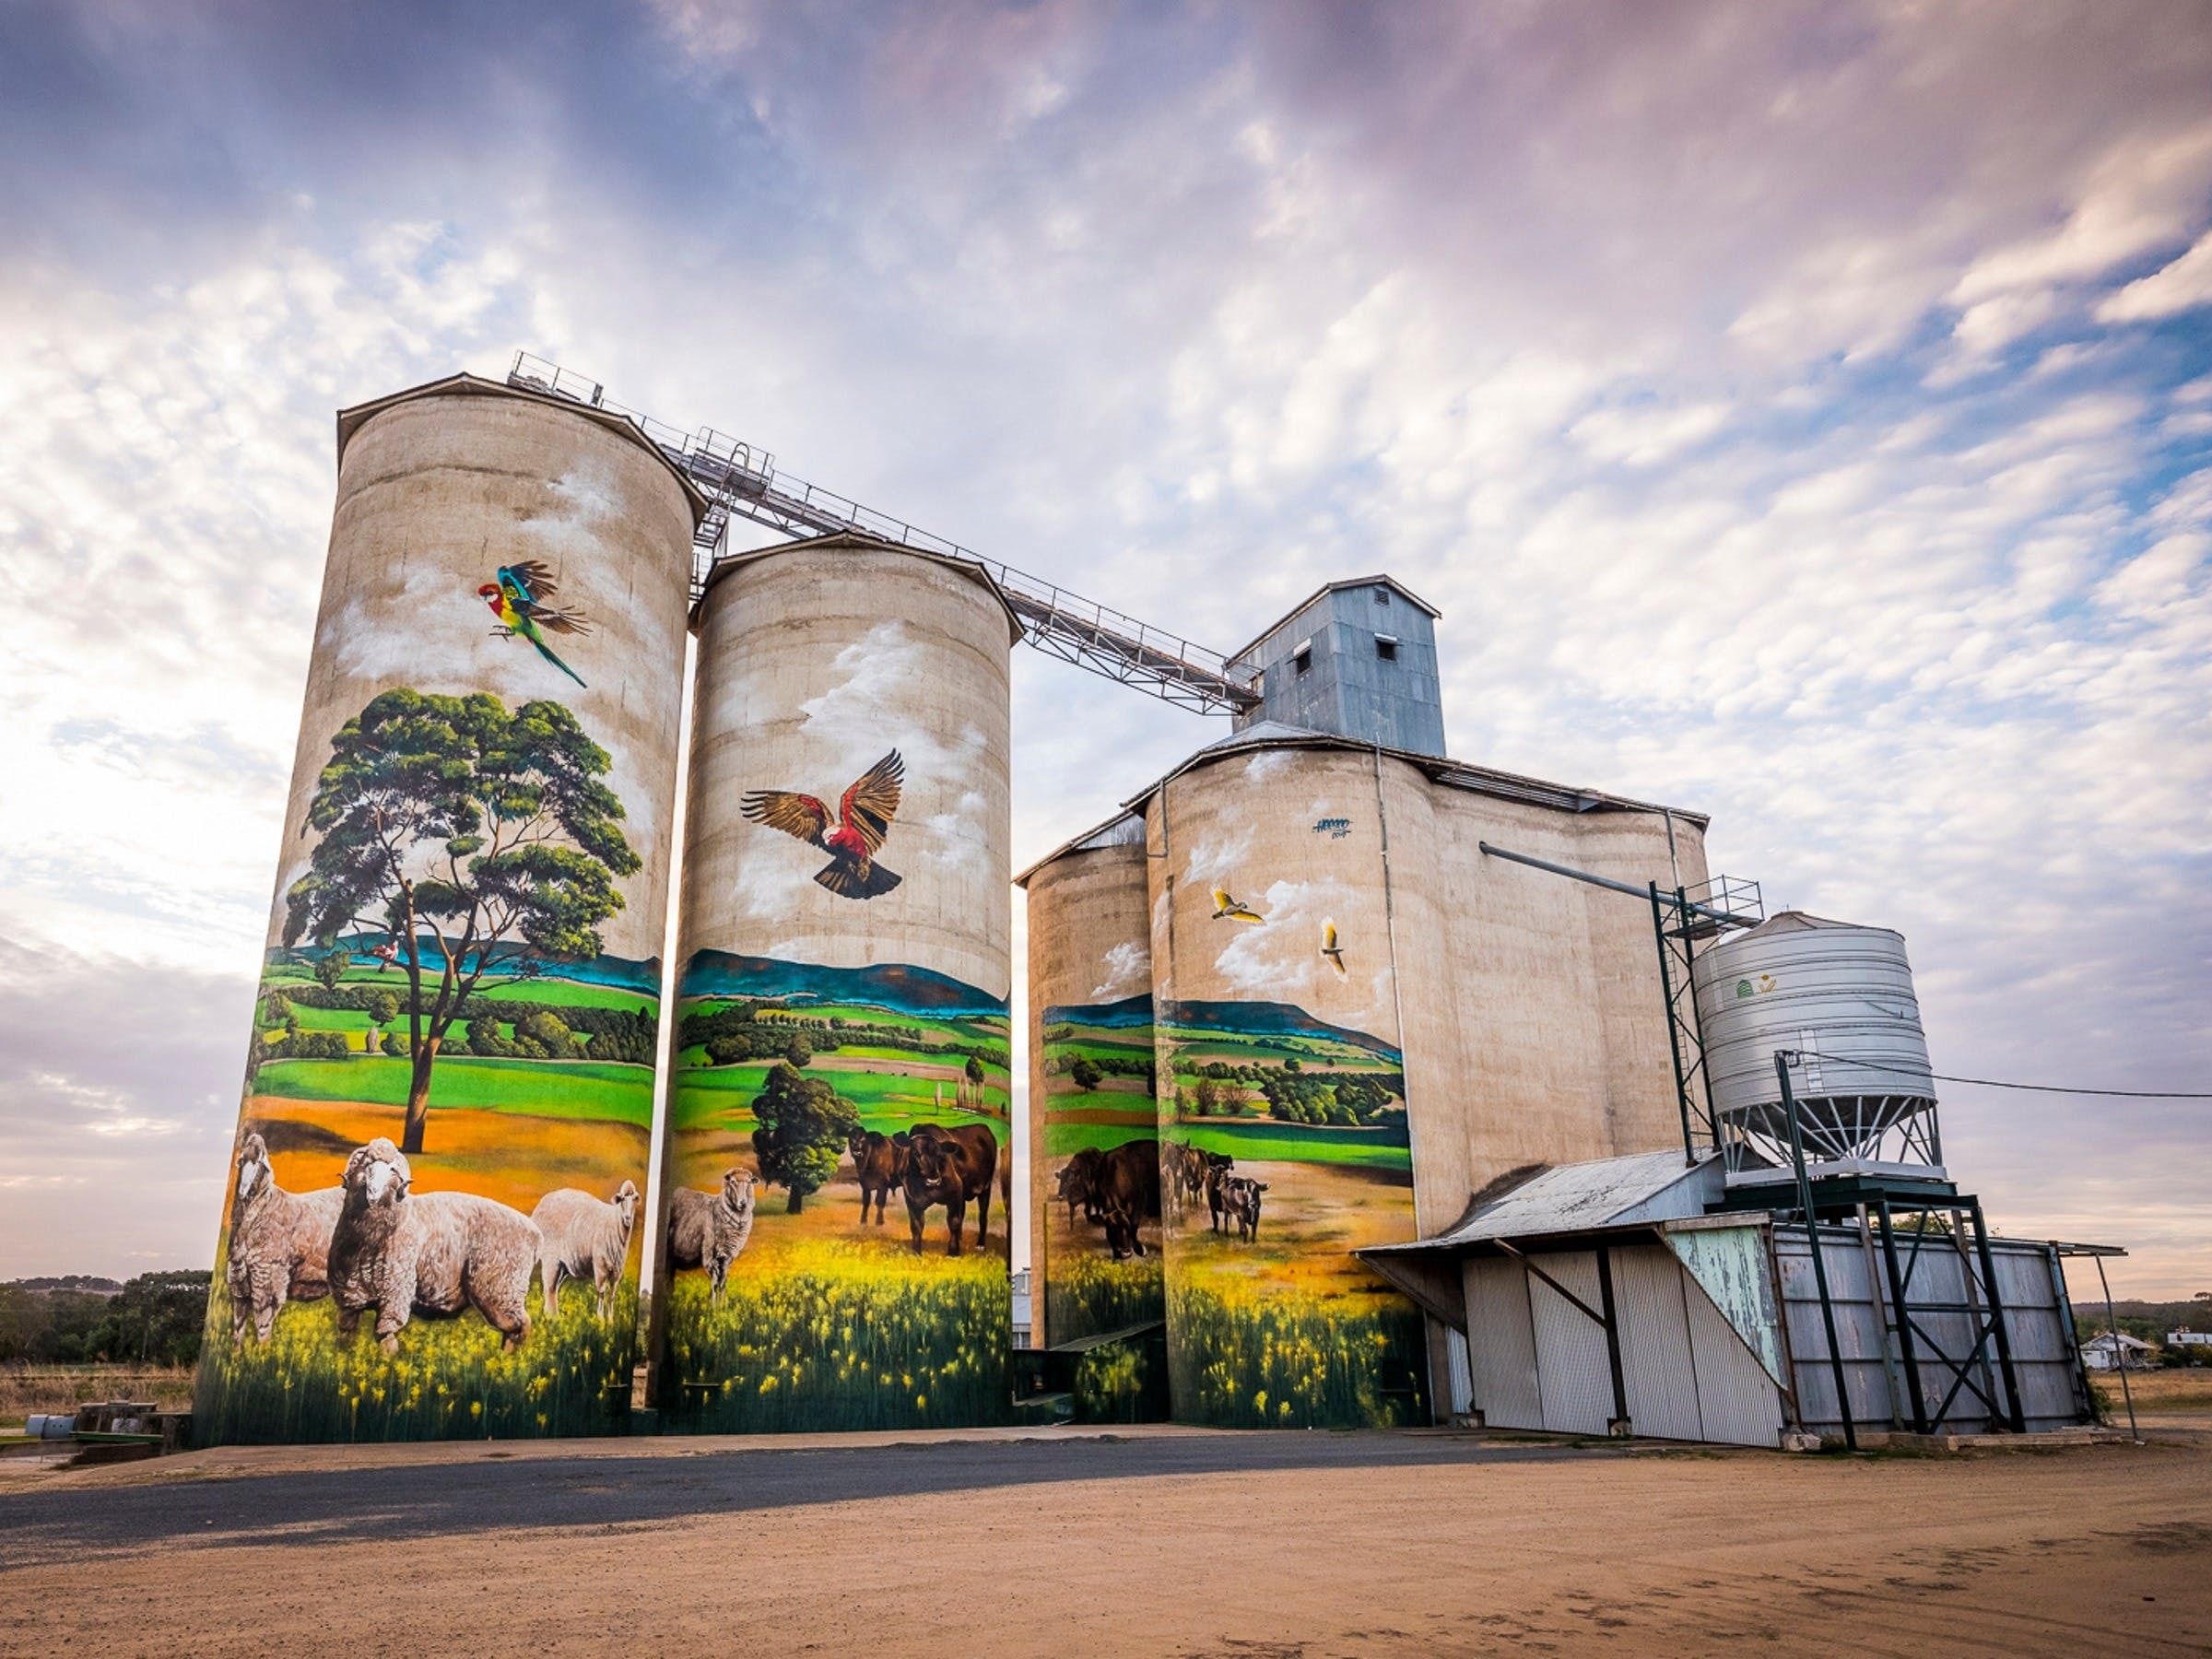 Grenfell Commodities Silos - Redcliffe Tourism